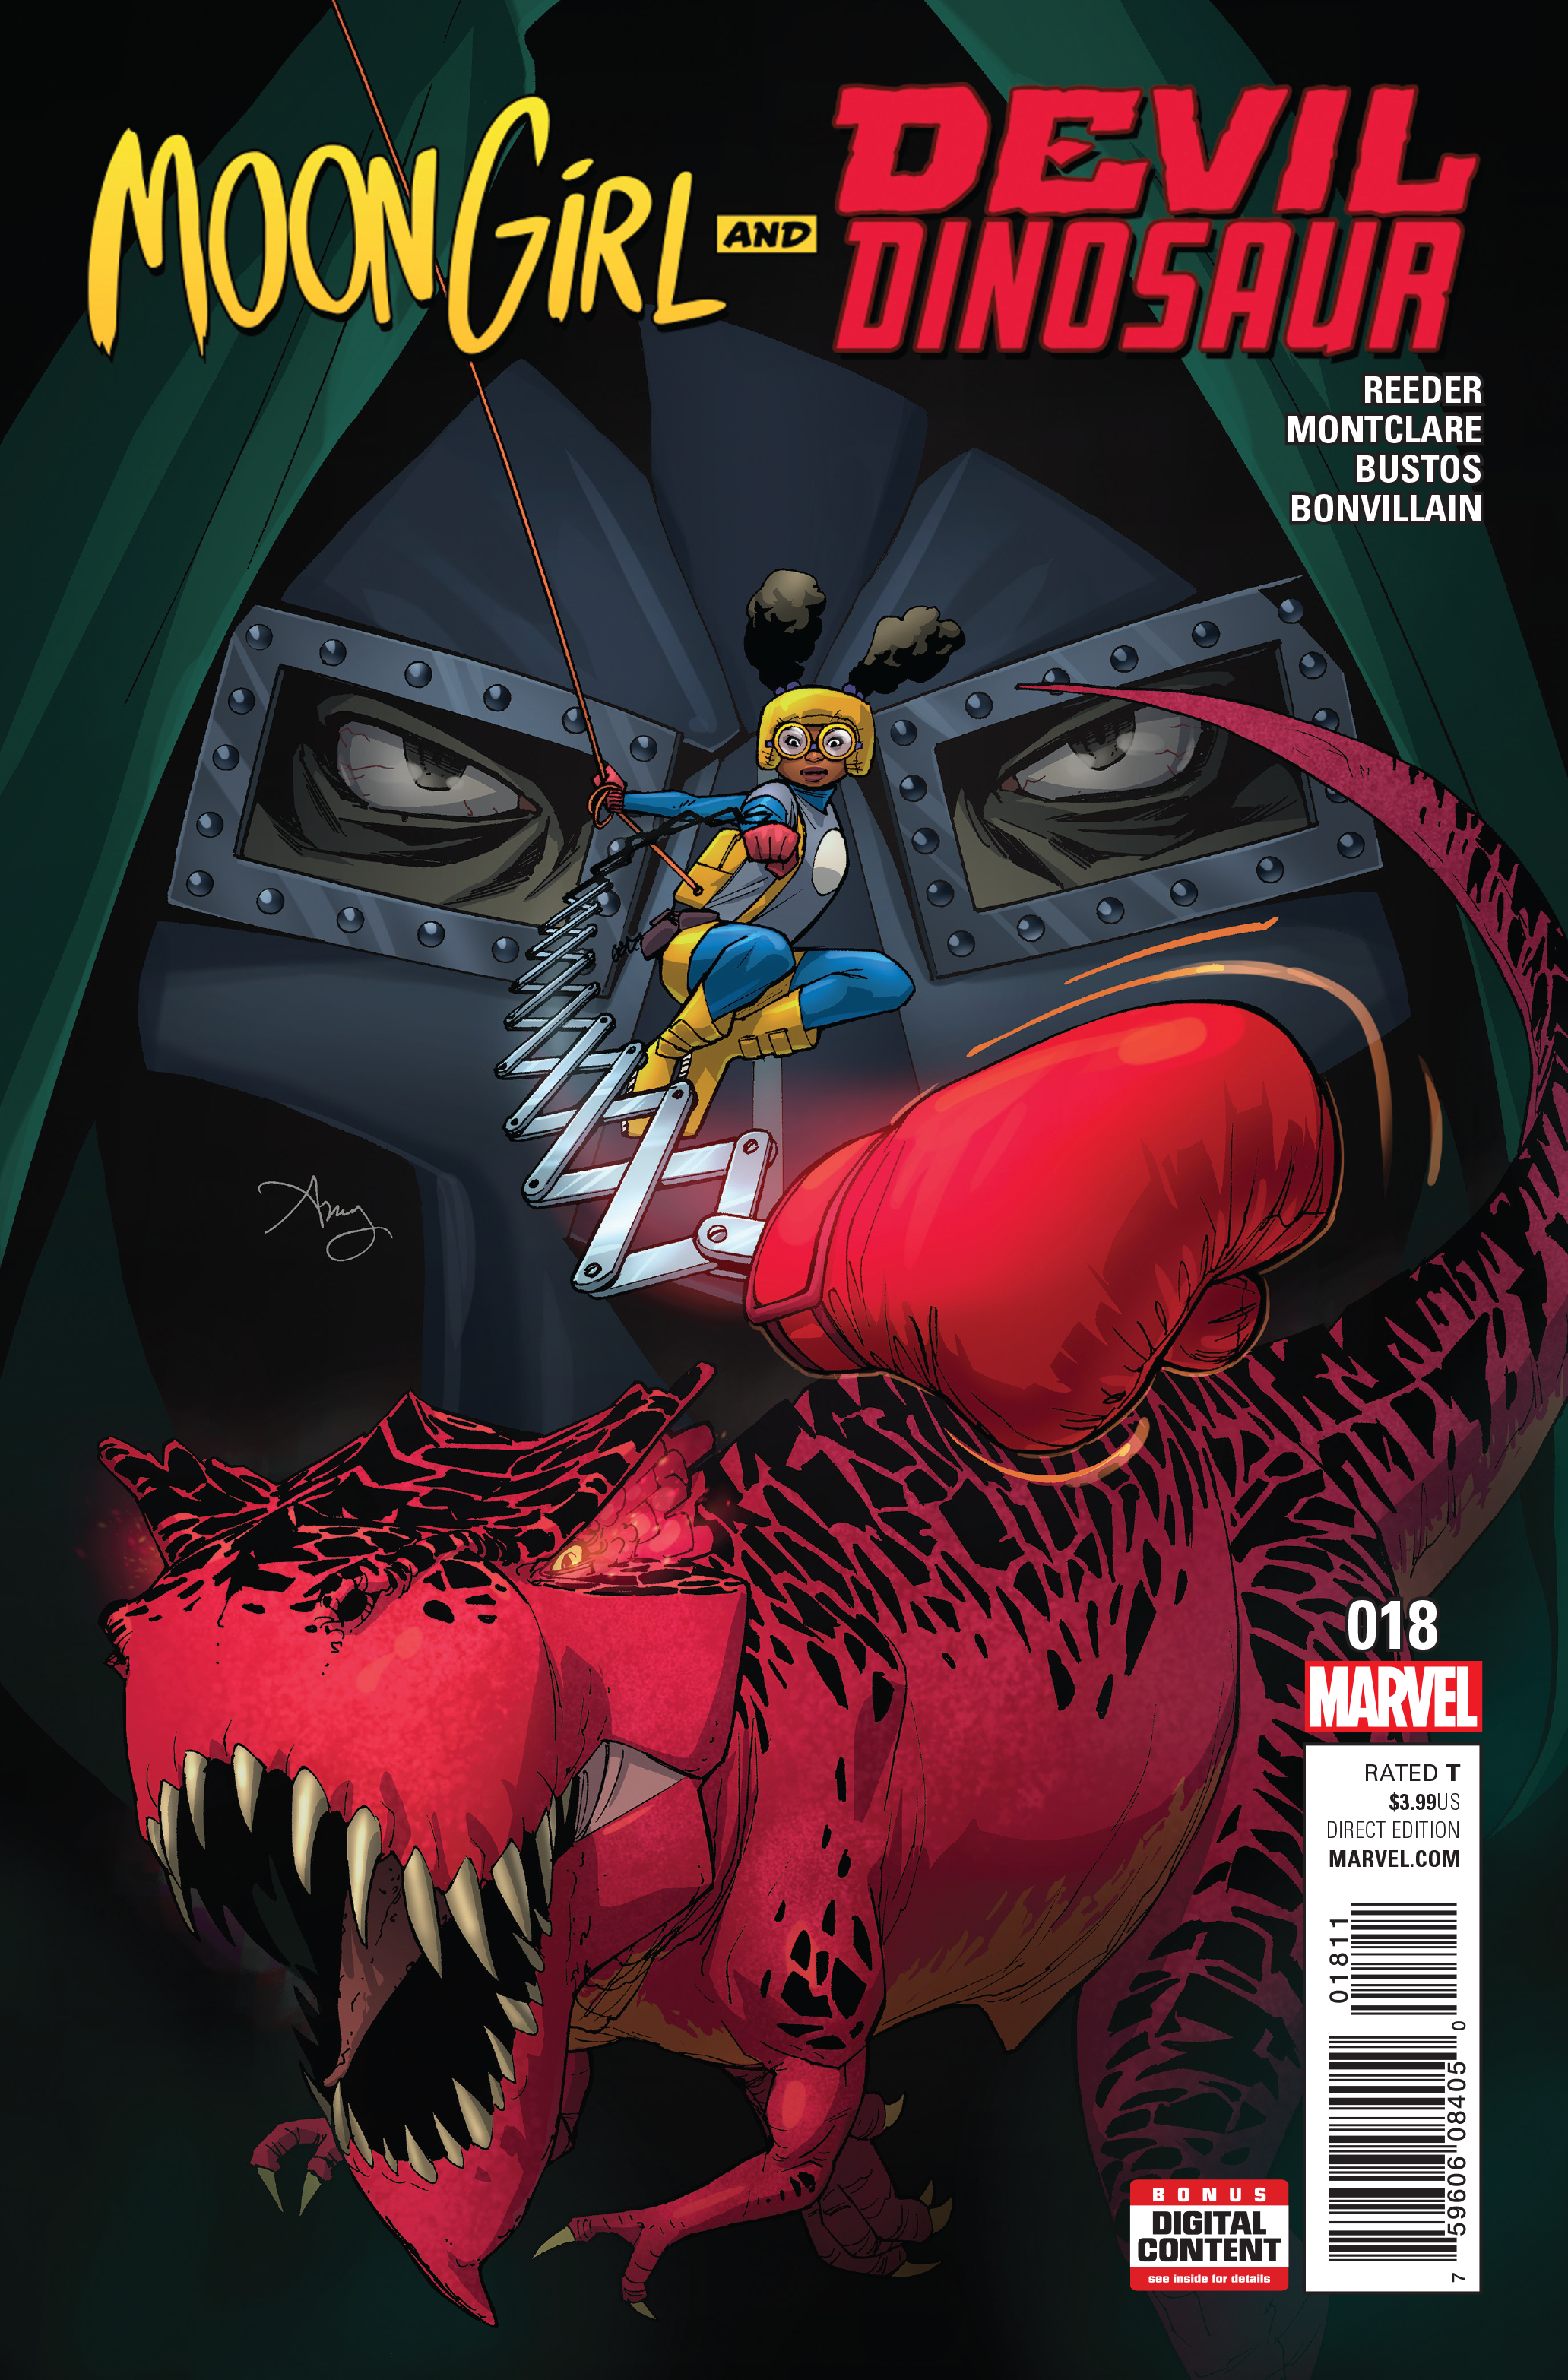 MOON GIRL AND DEVIL DINOSAUR #18